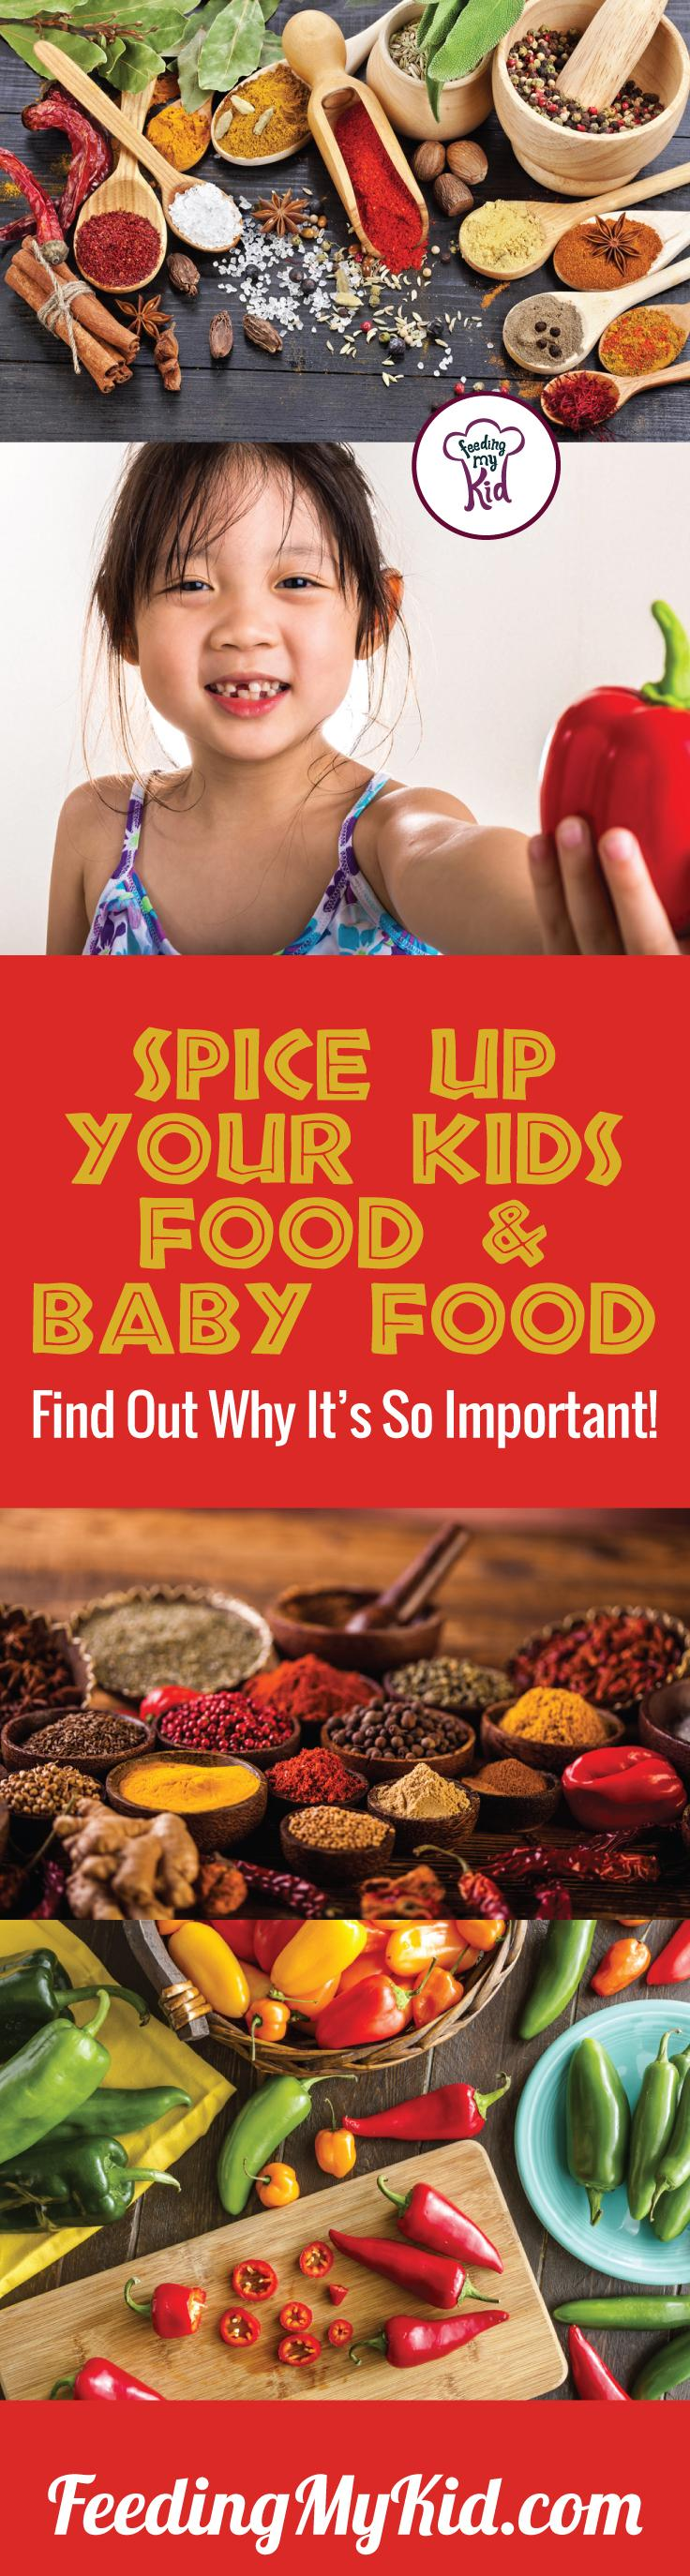 This is a must pin! Spice up your kids food to get them to eat foods they normally wouldn't. Add spices to homemade baby food. Find out more here. Feeding My Kid is a filled with all the information you need about how to raise your kids, from healthy tips to nutritious recipes. #pickyeating #getkidstoeat #spice #spiceupfood #food